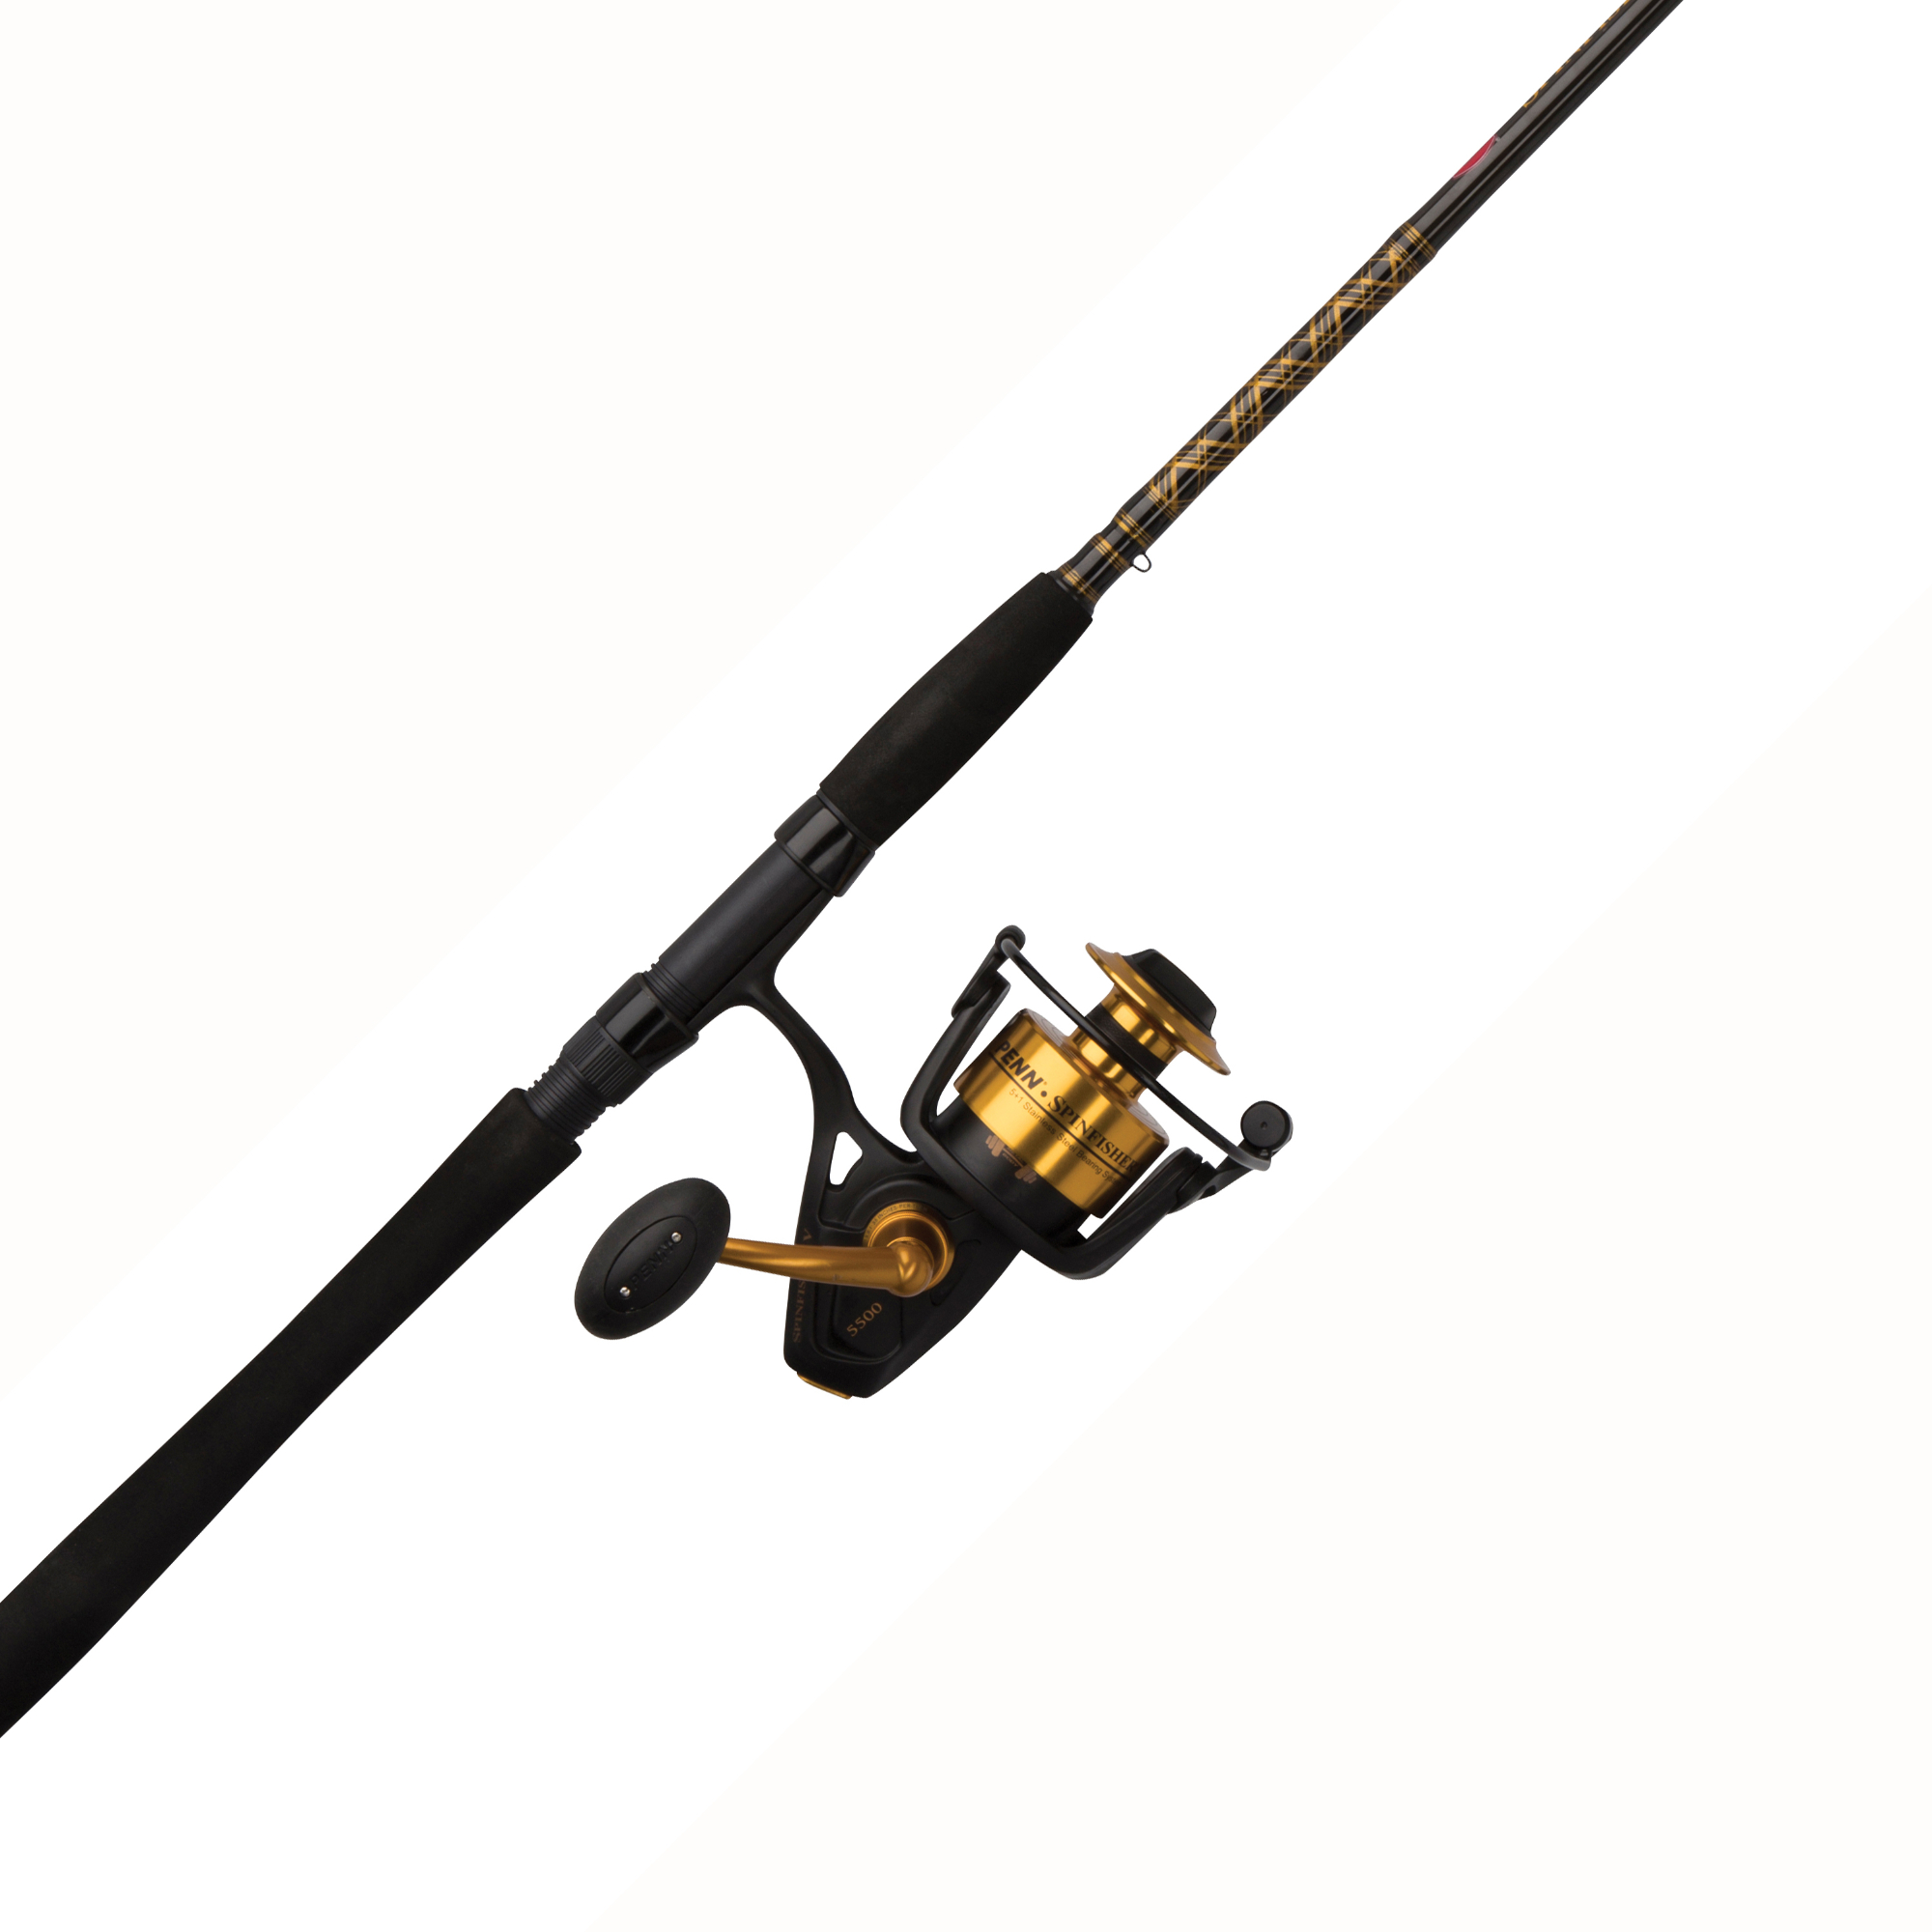 Penn Spinfisher V Spinning Reel and Fishing Rod Combo by Penn